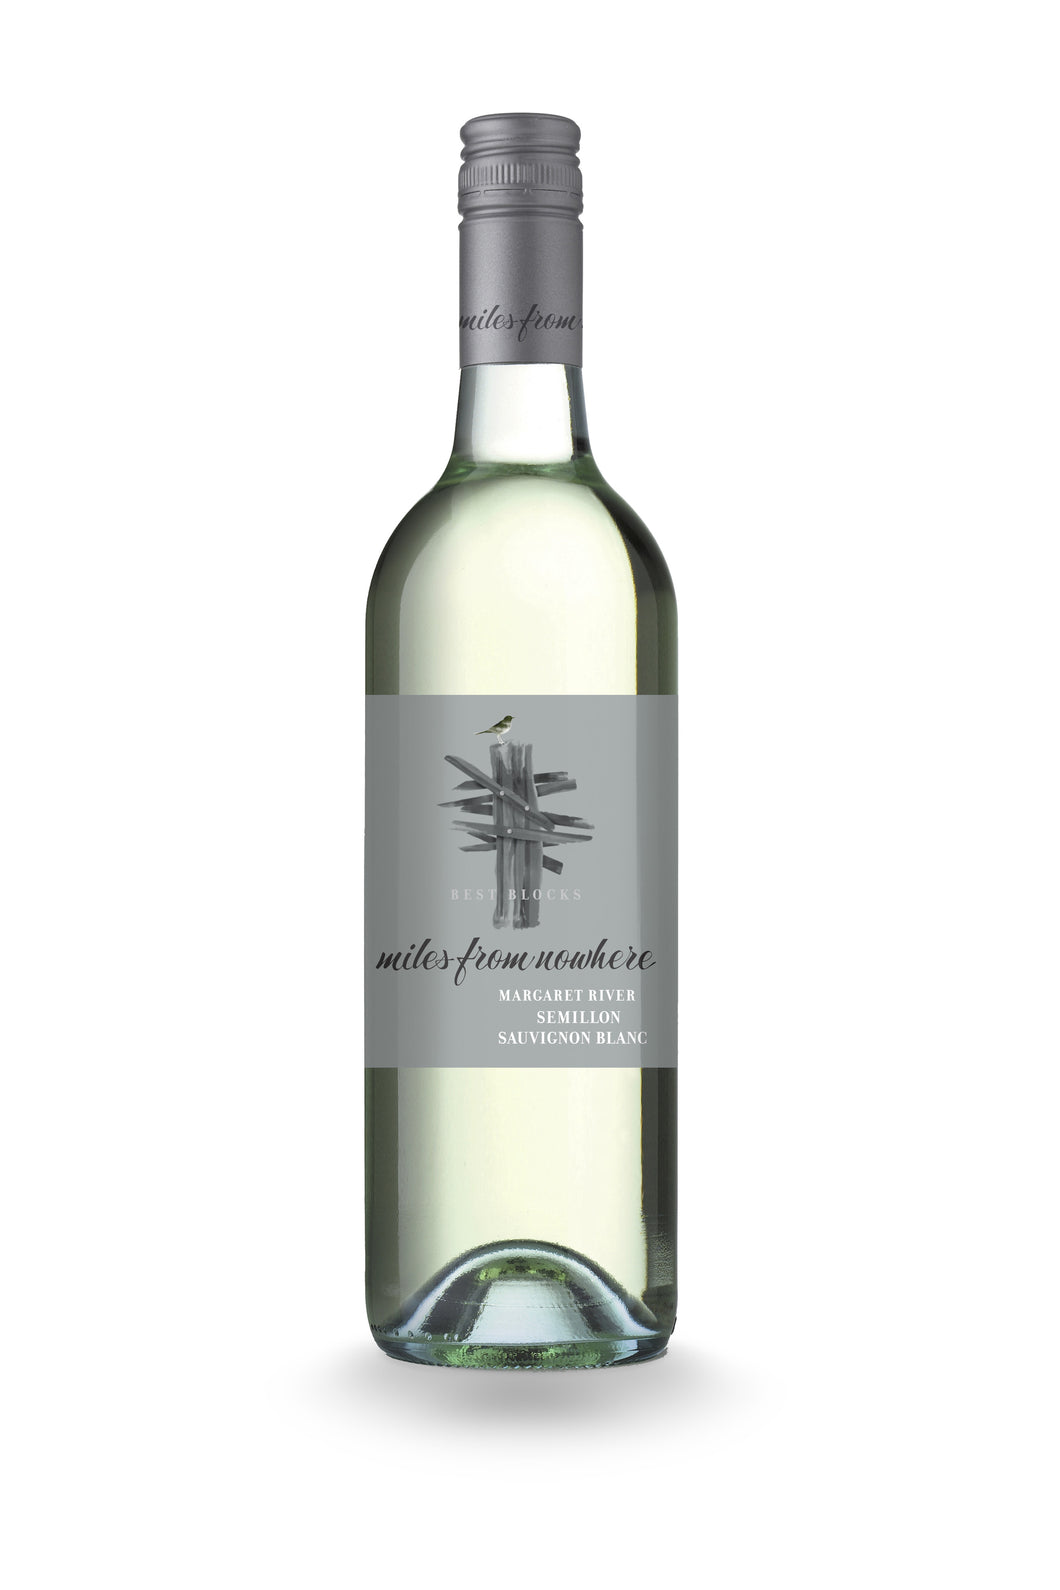 Miles From Nowhere Best Blocks Semillon Sauvignon Blanc 2017 - Network Wines